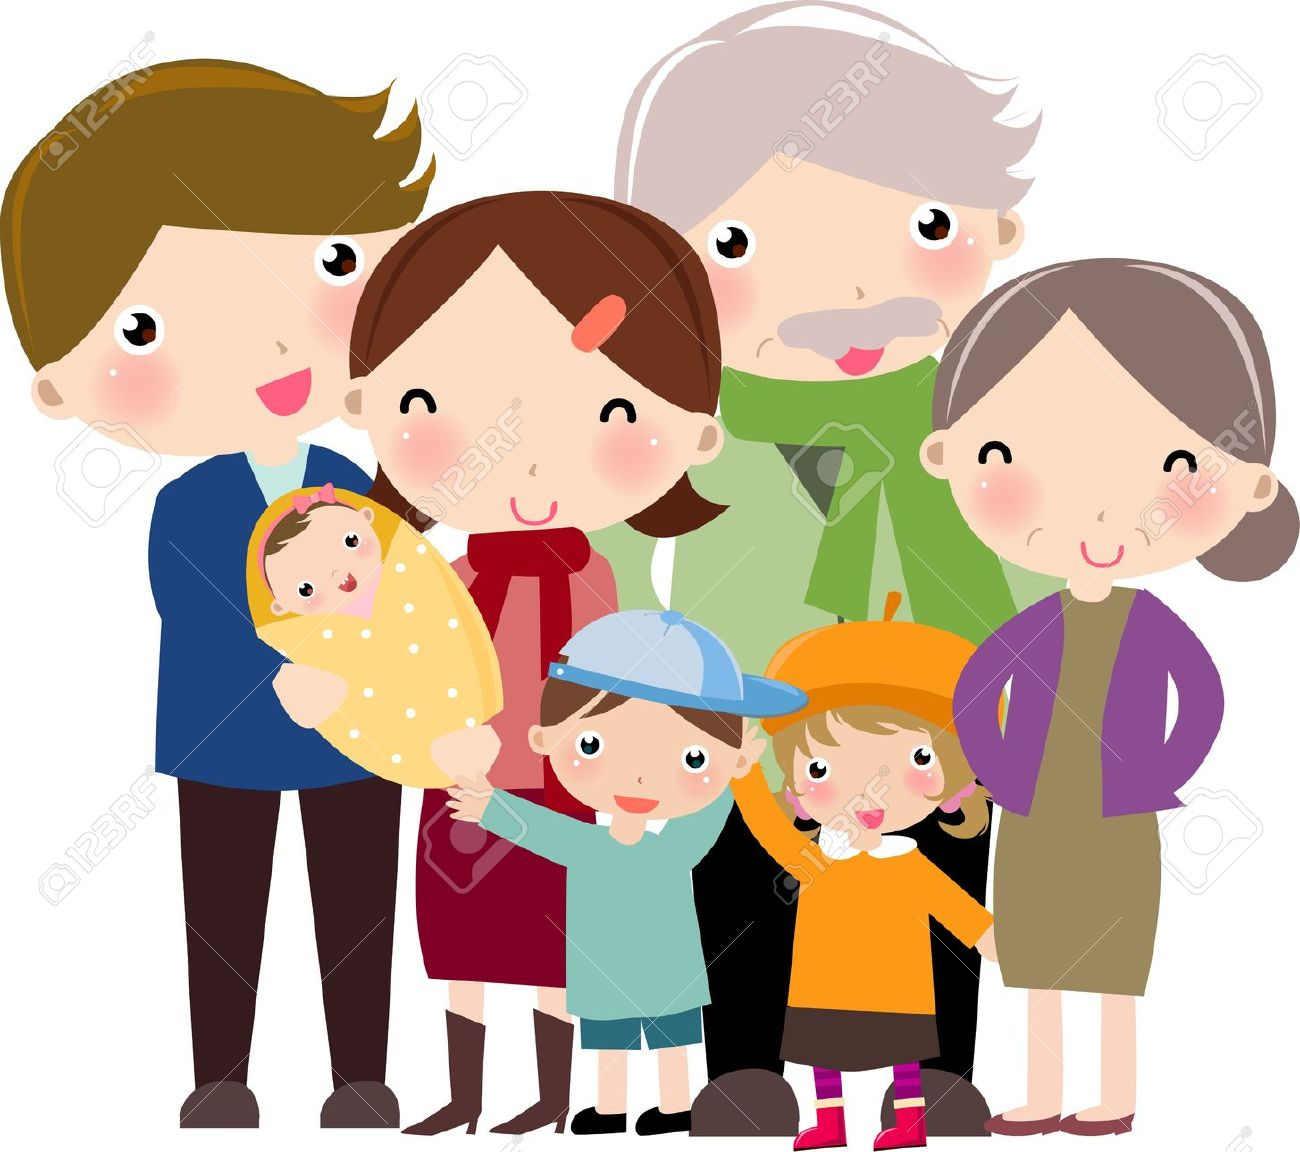 hight resolution of family clipart